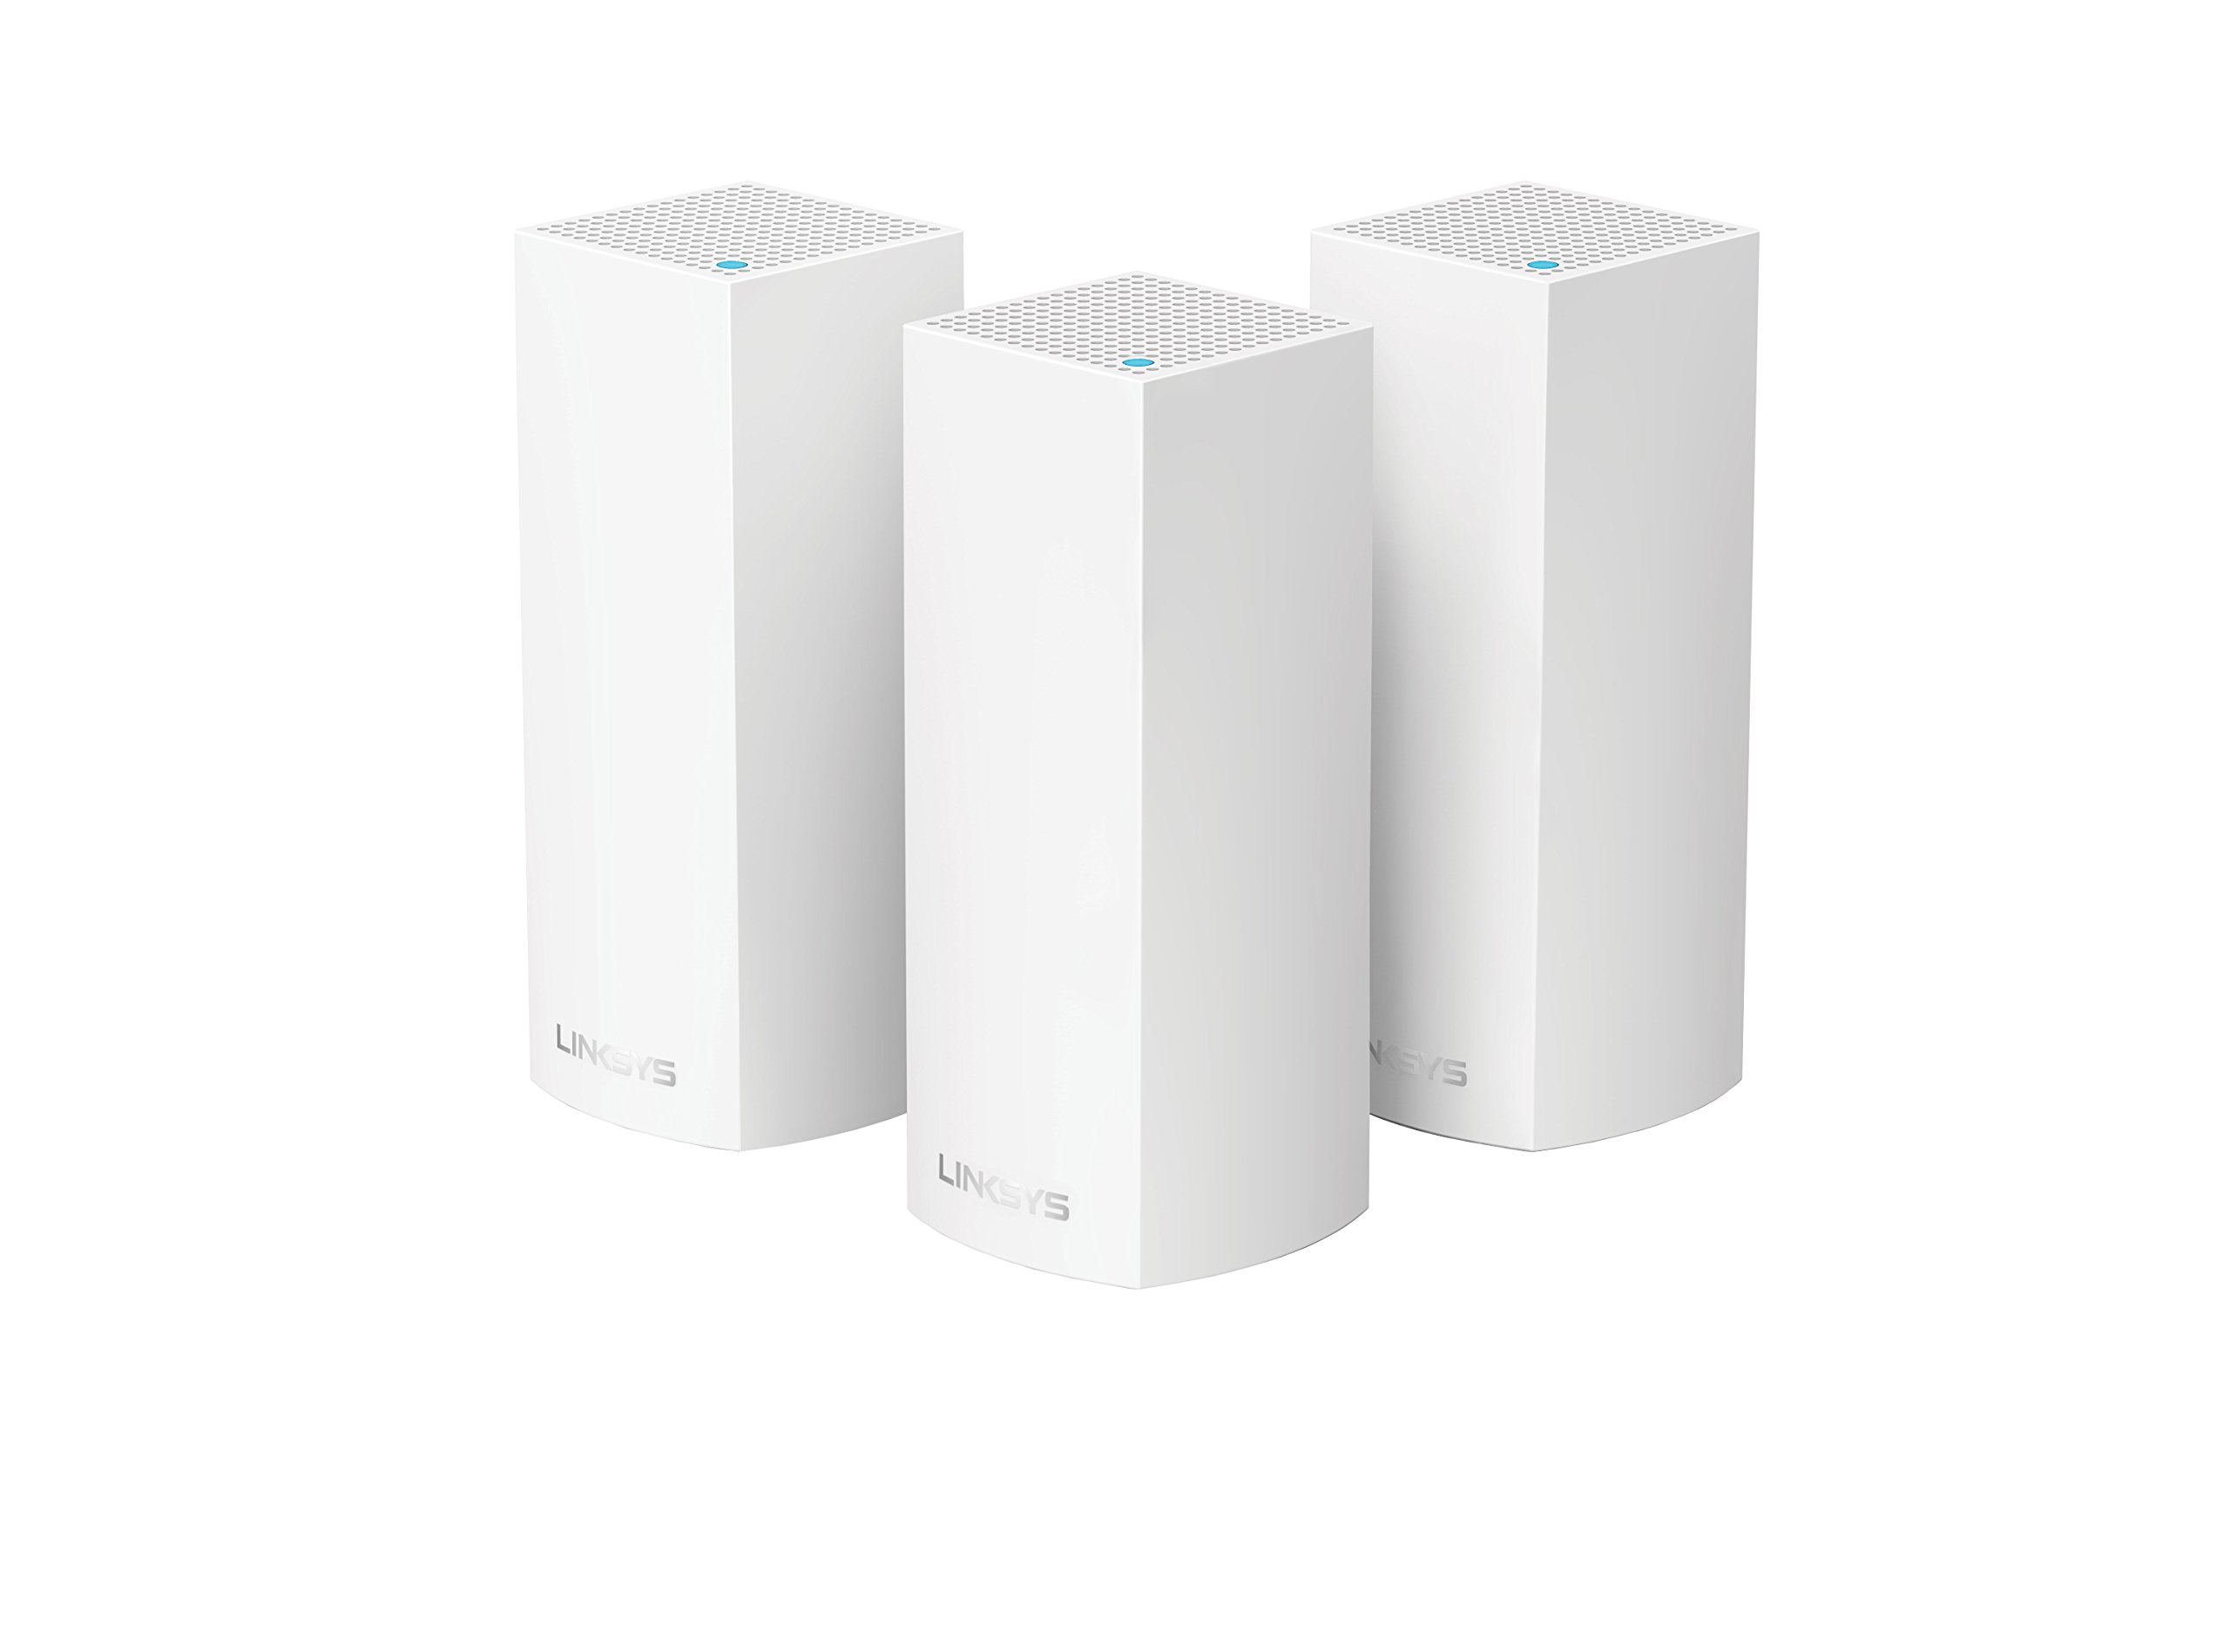 Linksys Velop Tri-band AC6600 Whole Home WiFi Mesh System- 3-Pack (coverage up to 6000 sq. ft) by Linksys